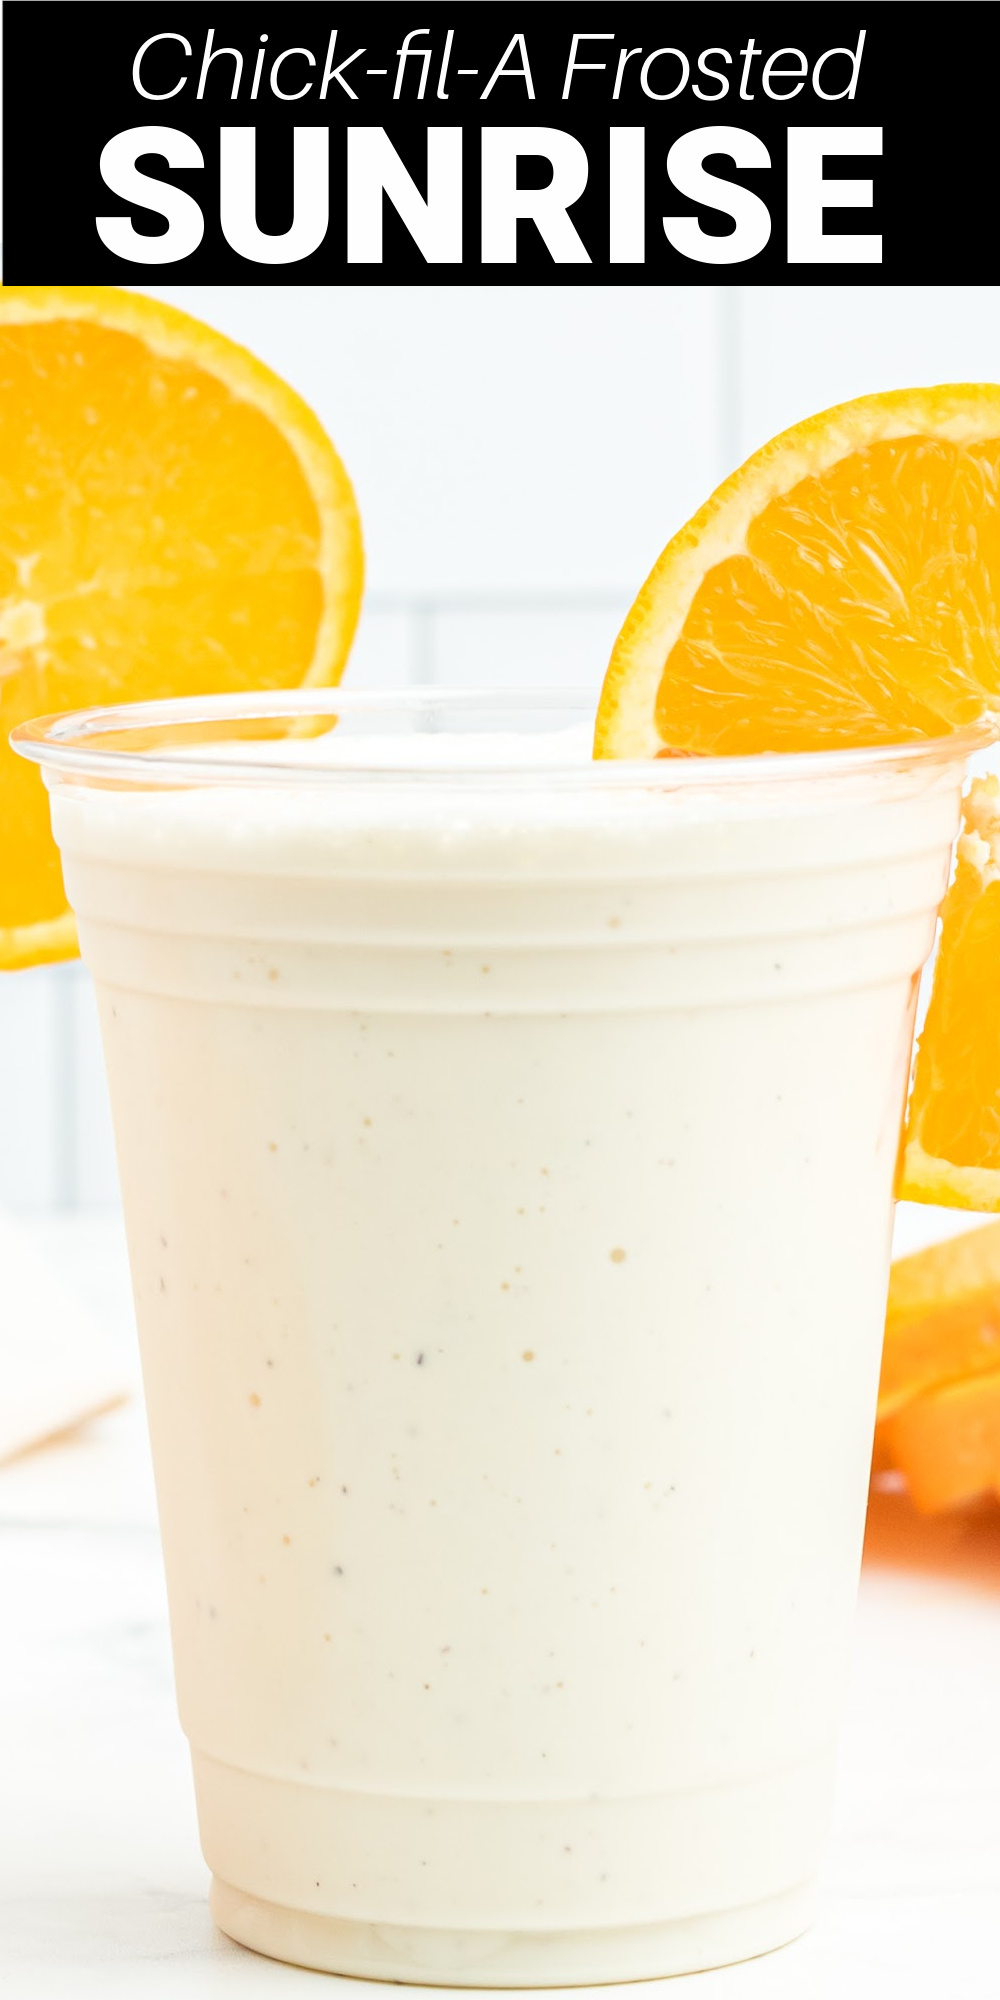 This copycat Chick-Fil-A Frosted Sunrise drink is a perfect creamy orange milkshake for a hot summer day. It's similar to Chick-fil-A's Frosted Lemonade just with fresh orange flavor!